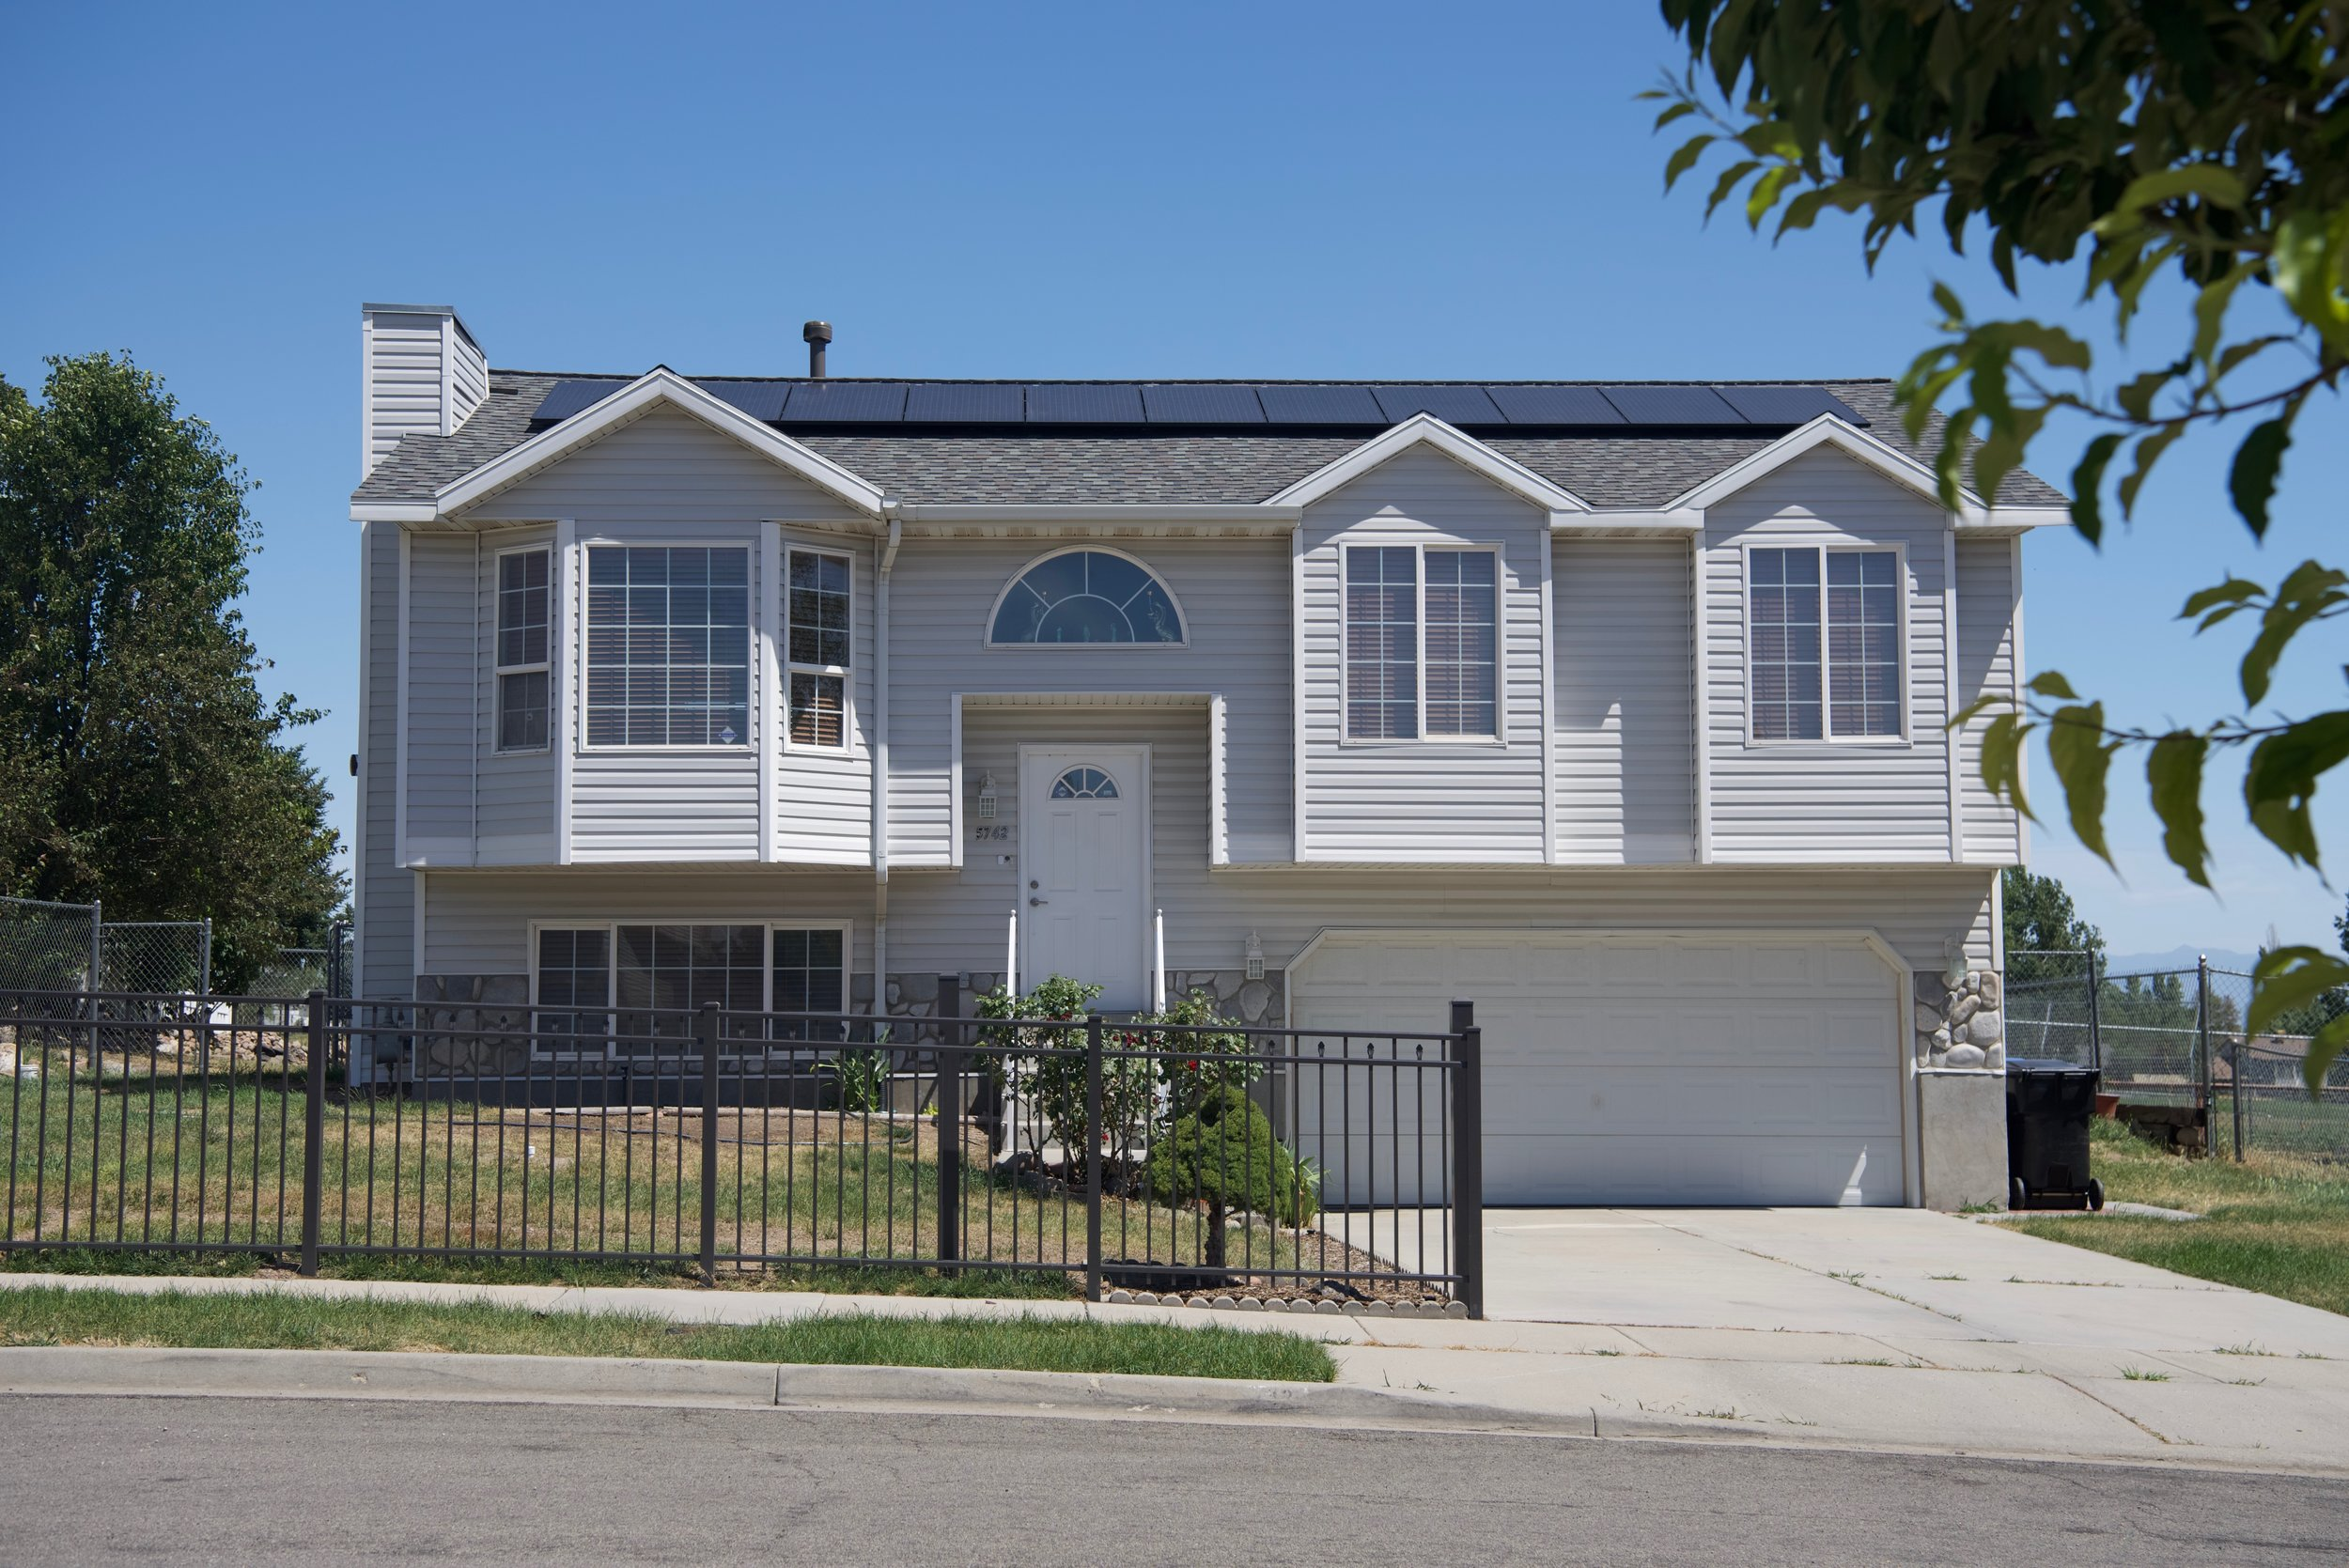 11 panels installed 4kW generated per month  $50.32 saved per month